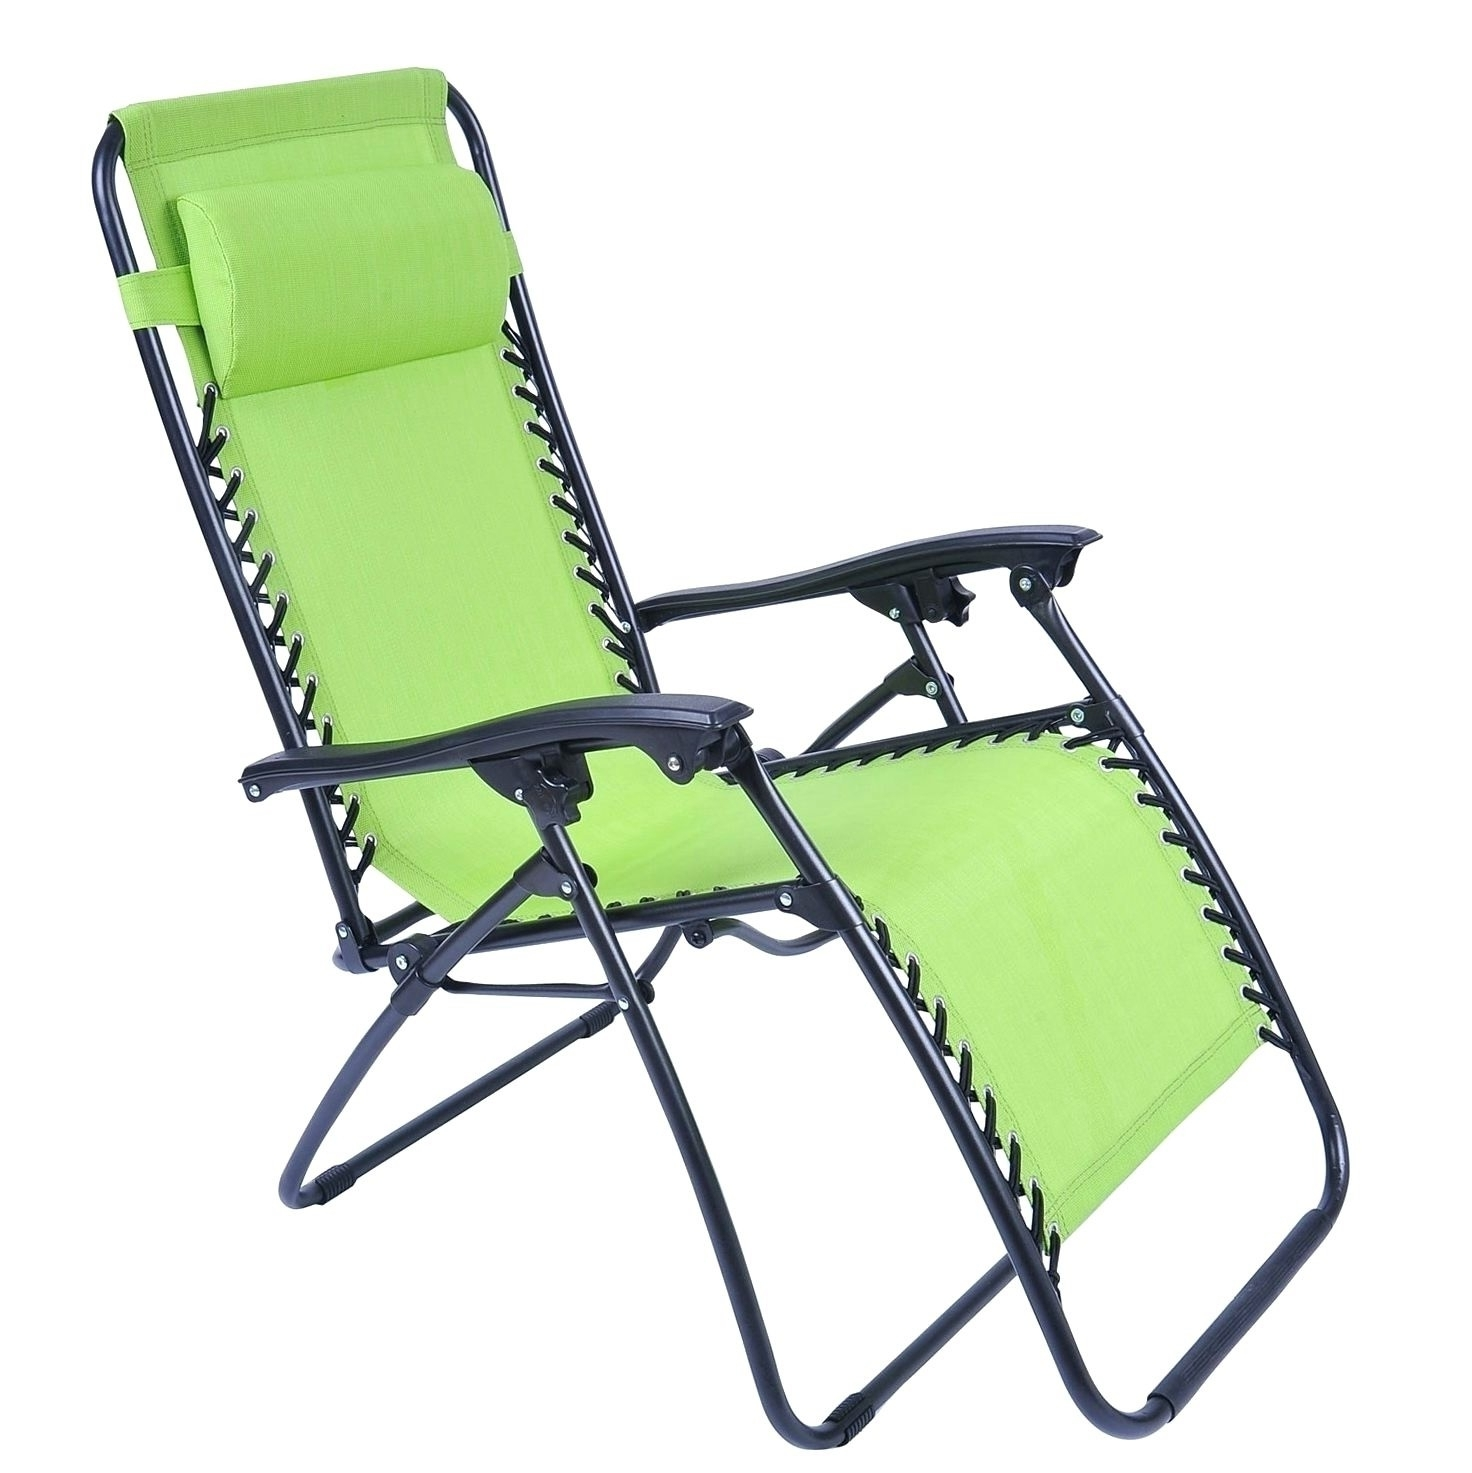 Outdoor Lounge Chairs Target Elegant Outdoor Chaise Lounge Chair Pertaining To Most Up To Date Chaise Lounge Chairs At Target (View 11 of 15)